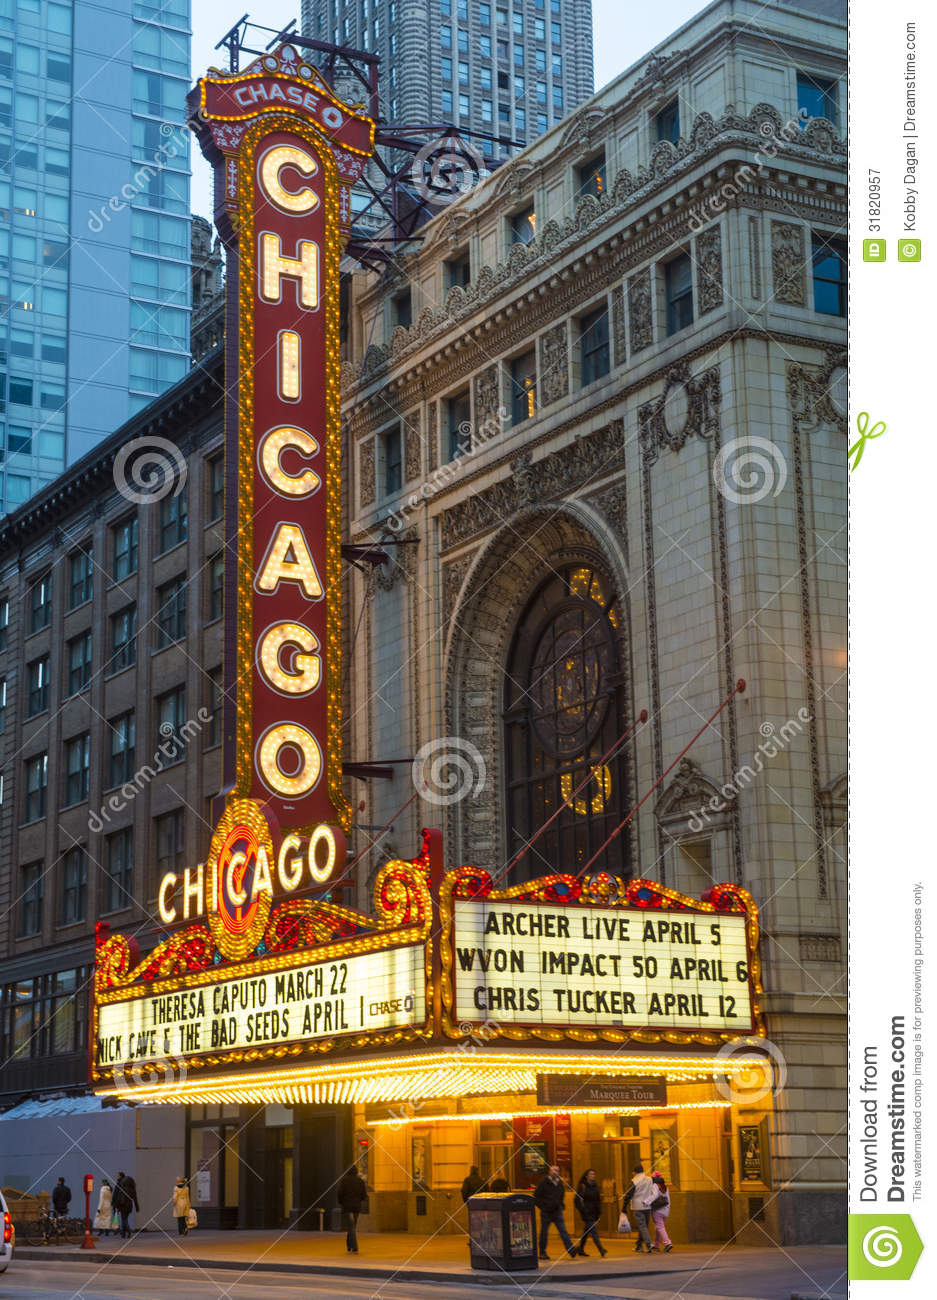 The Chicago Theatre Marquee Tour March